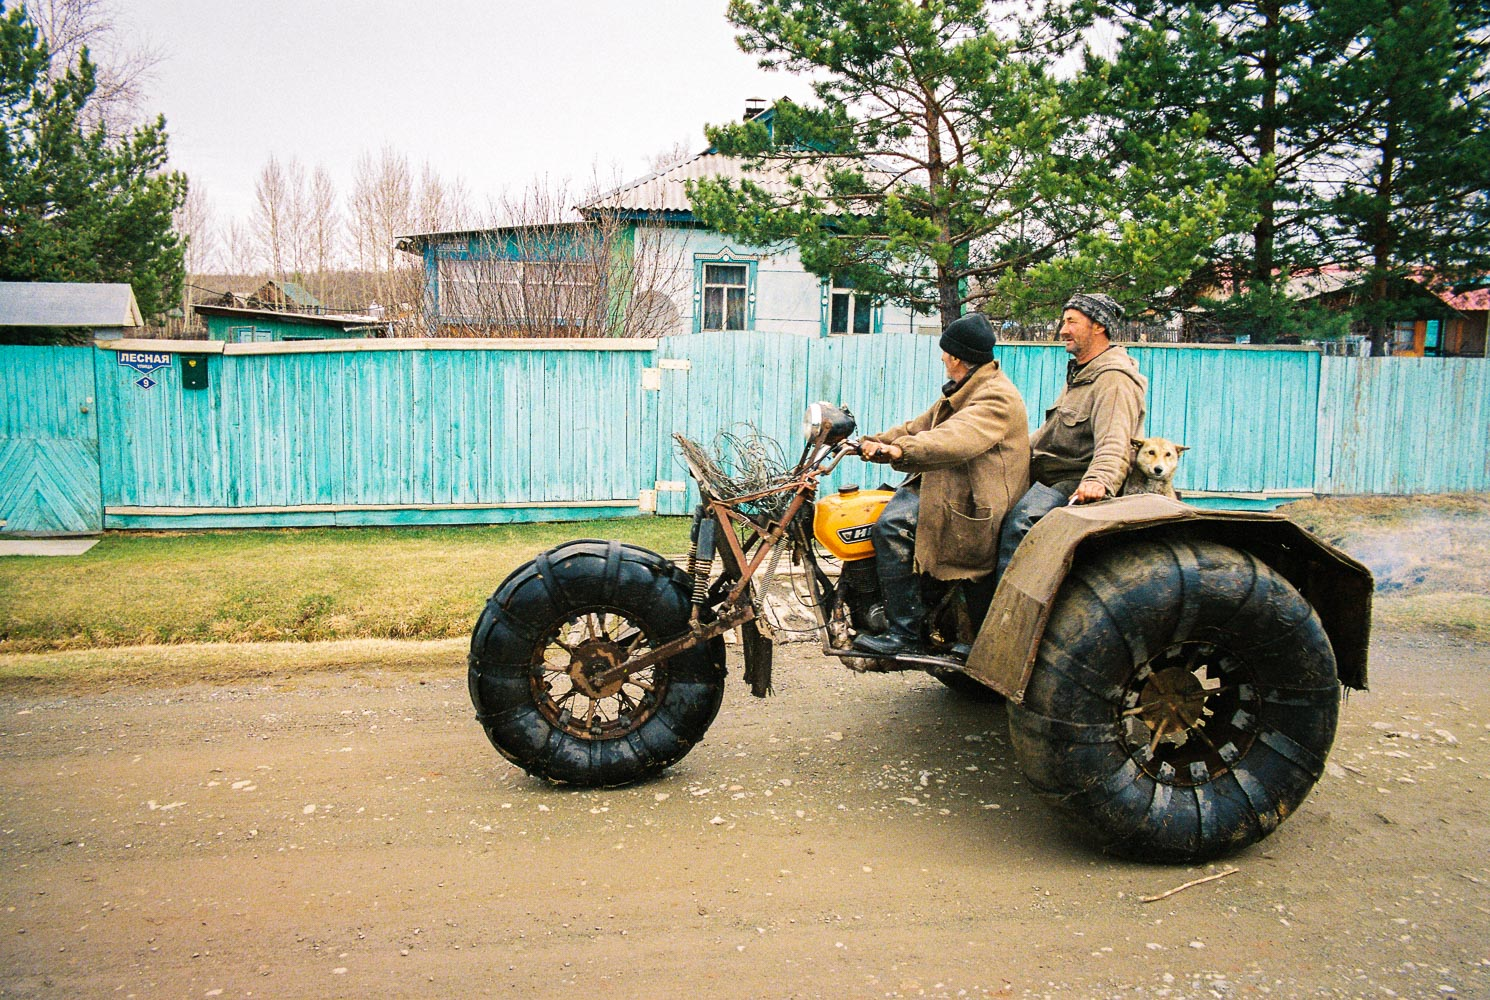 Trans_siberian_photo_workshop_Off_road_Motor_cycle_creative_adventure_photography_travel-54.jpg